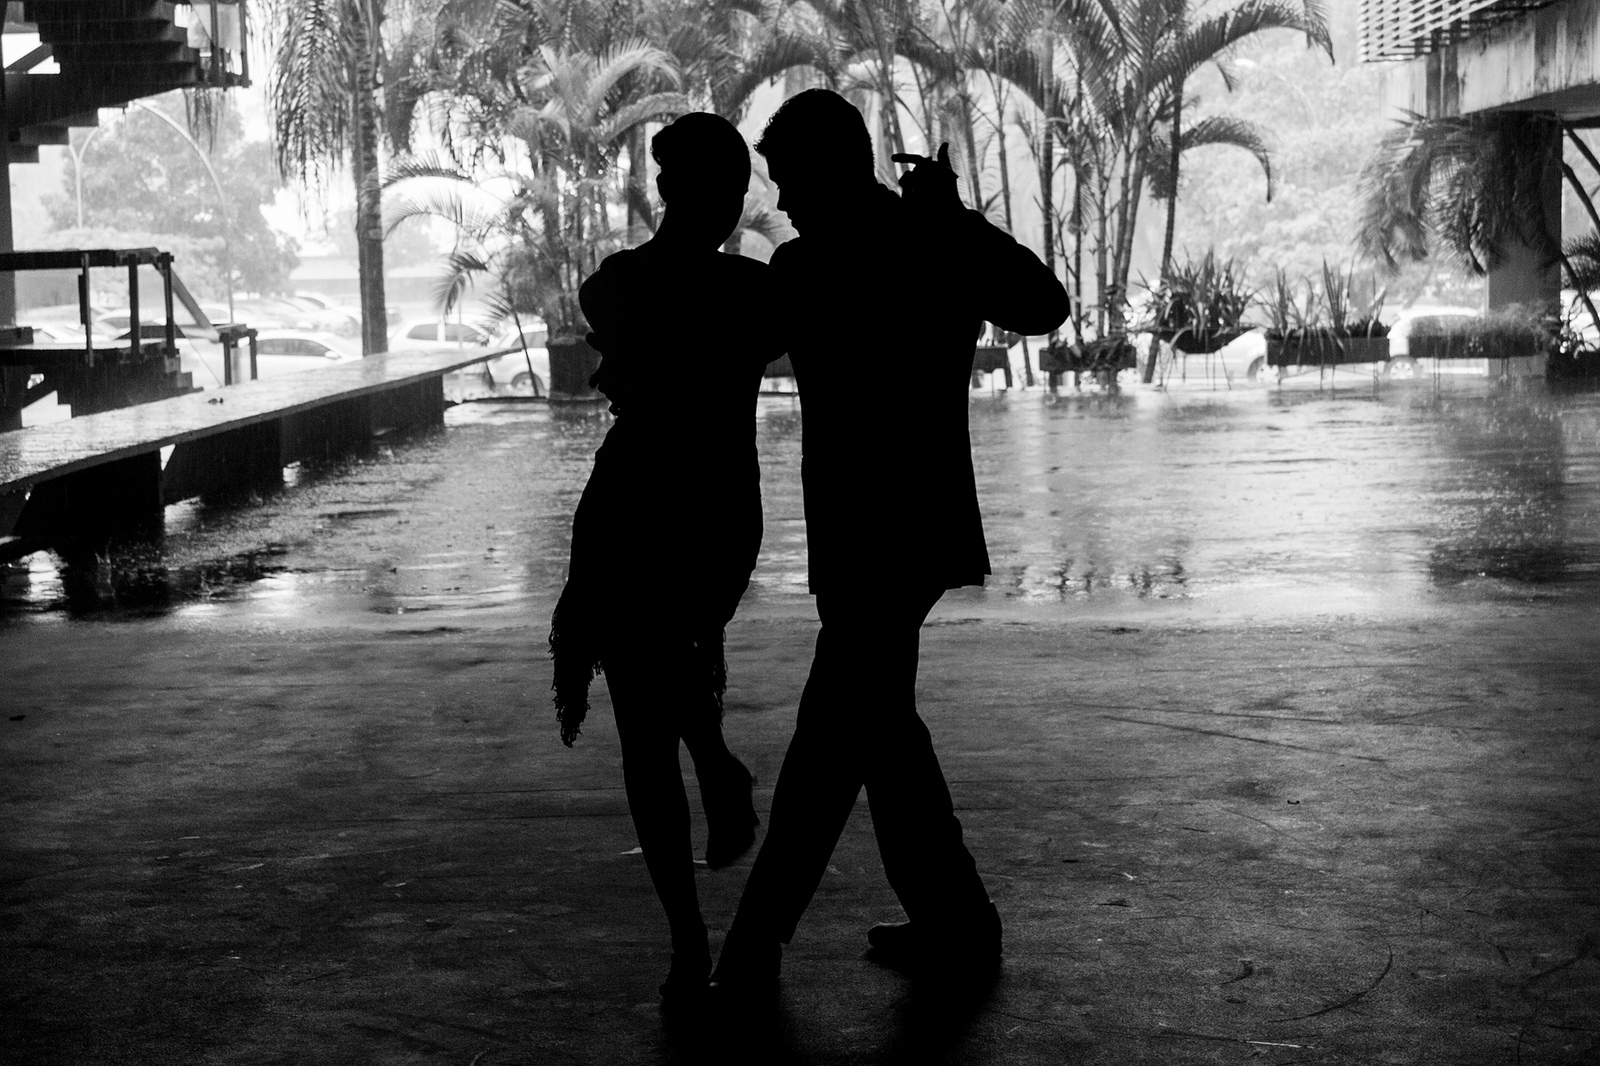 Tango na Reitoria by Mariana Costa, licence: CC BY 2.0